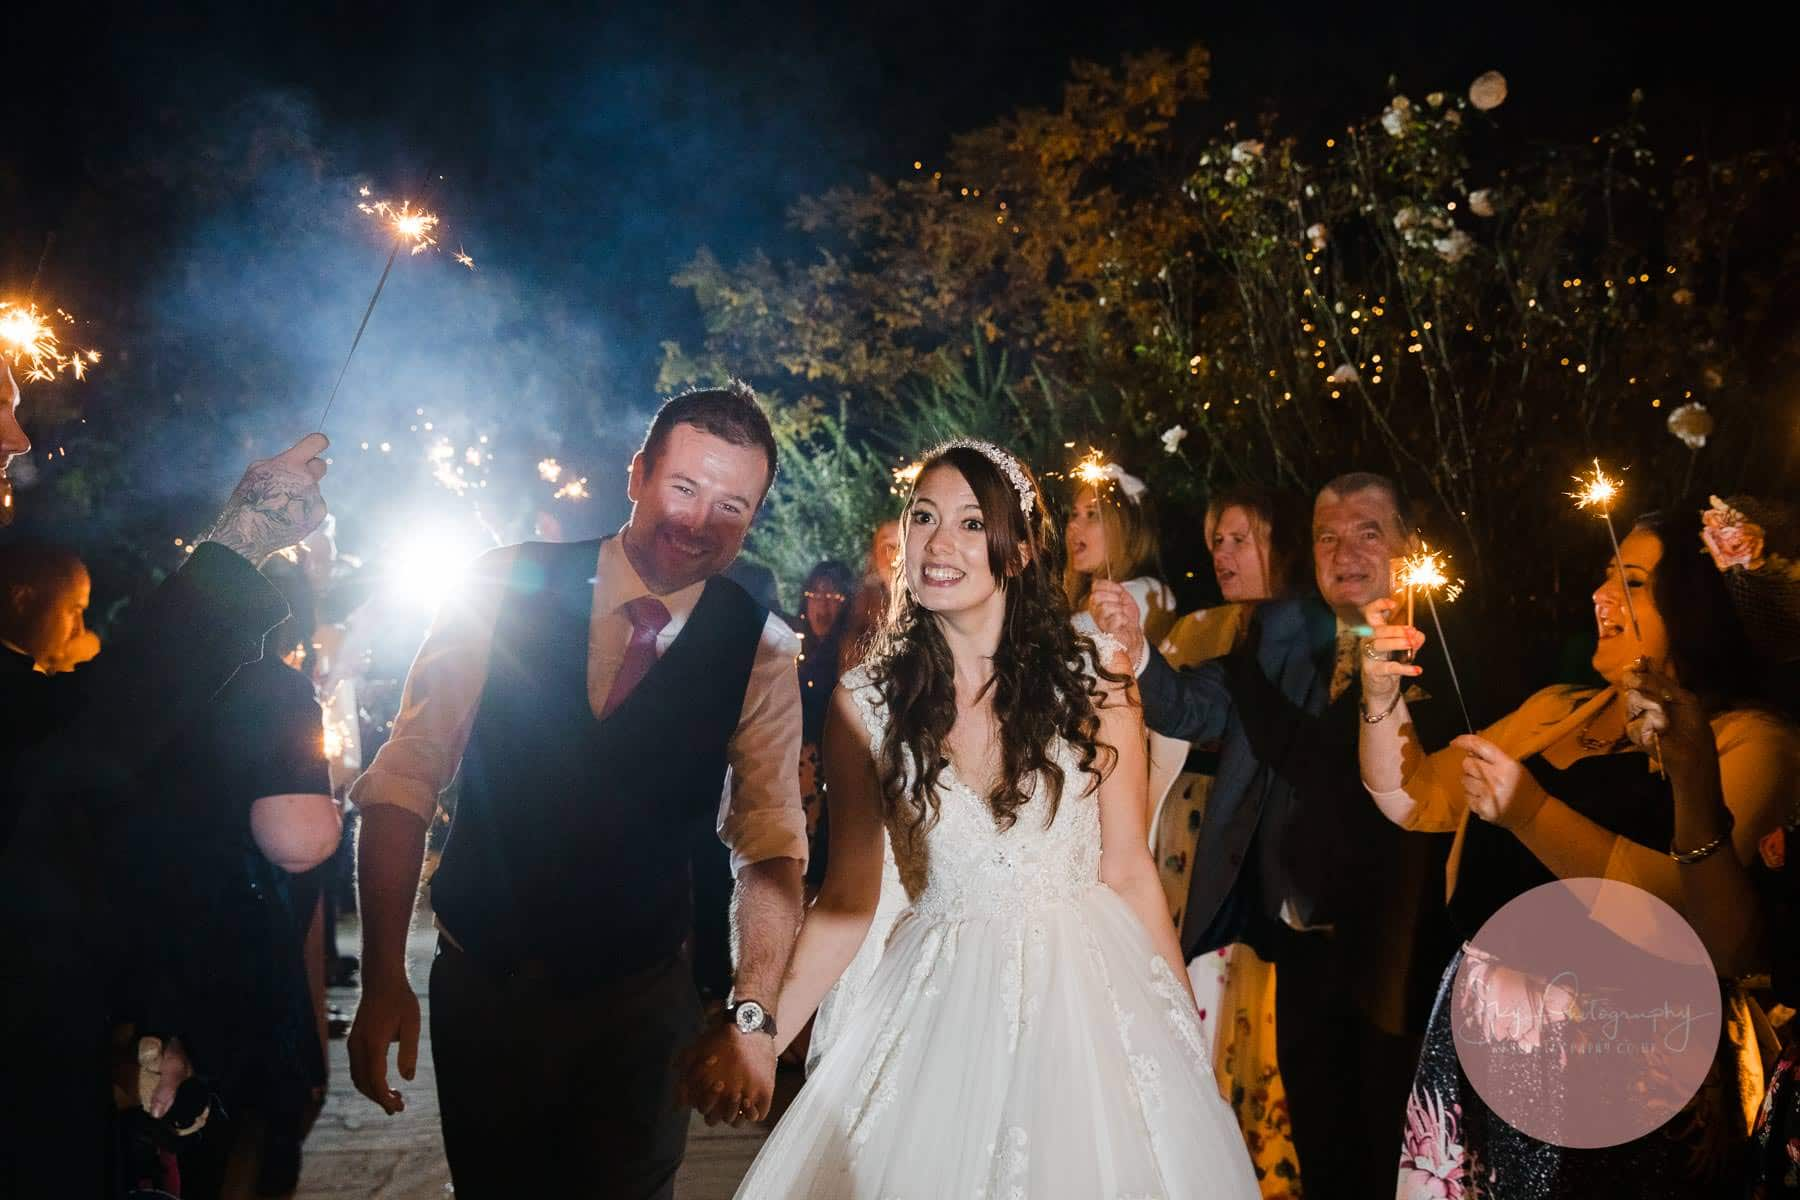 Bride and groom walking though the wedding guests holding sparklers